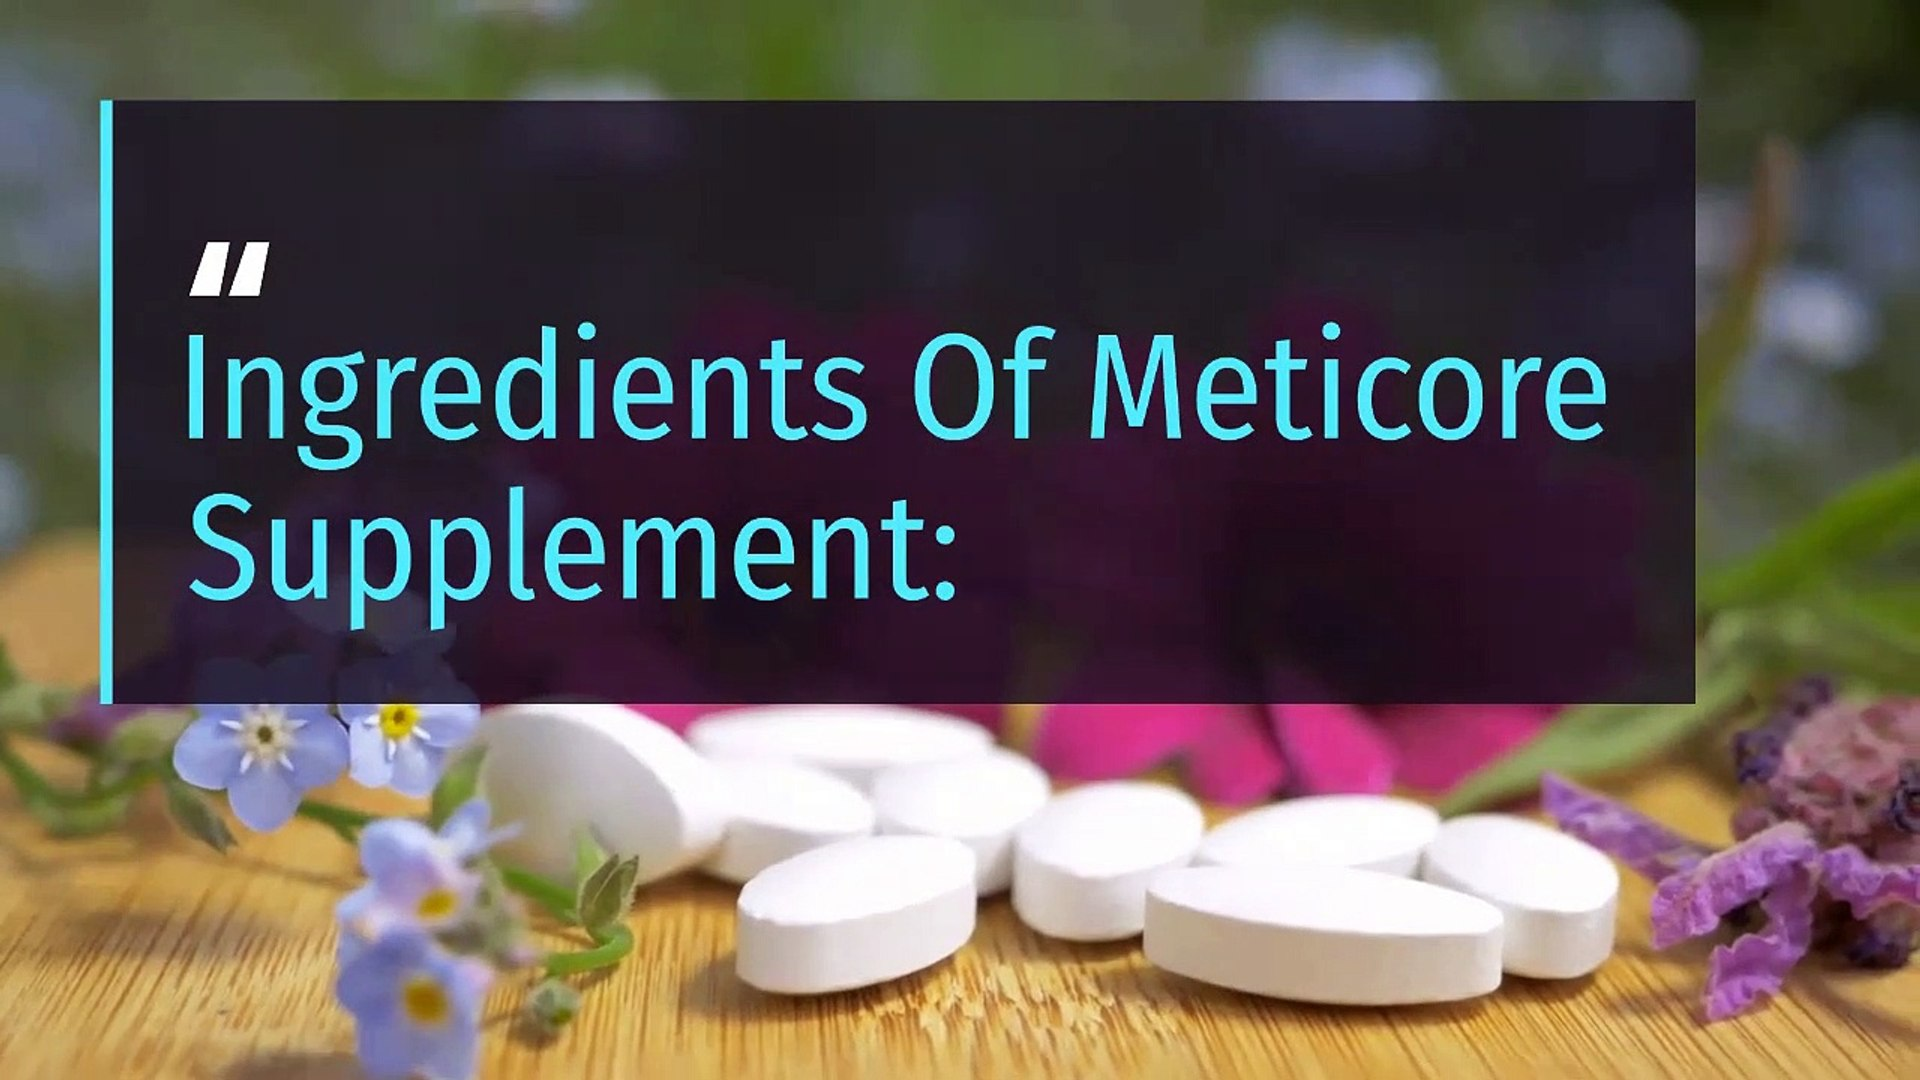 The supplement Meticore achieves a significant improvement in your health